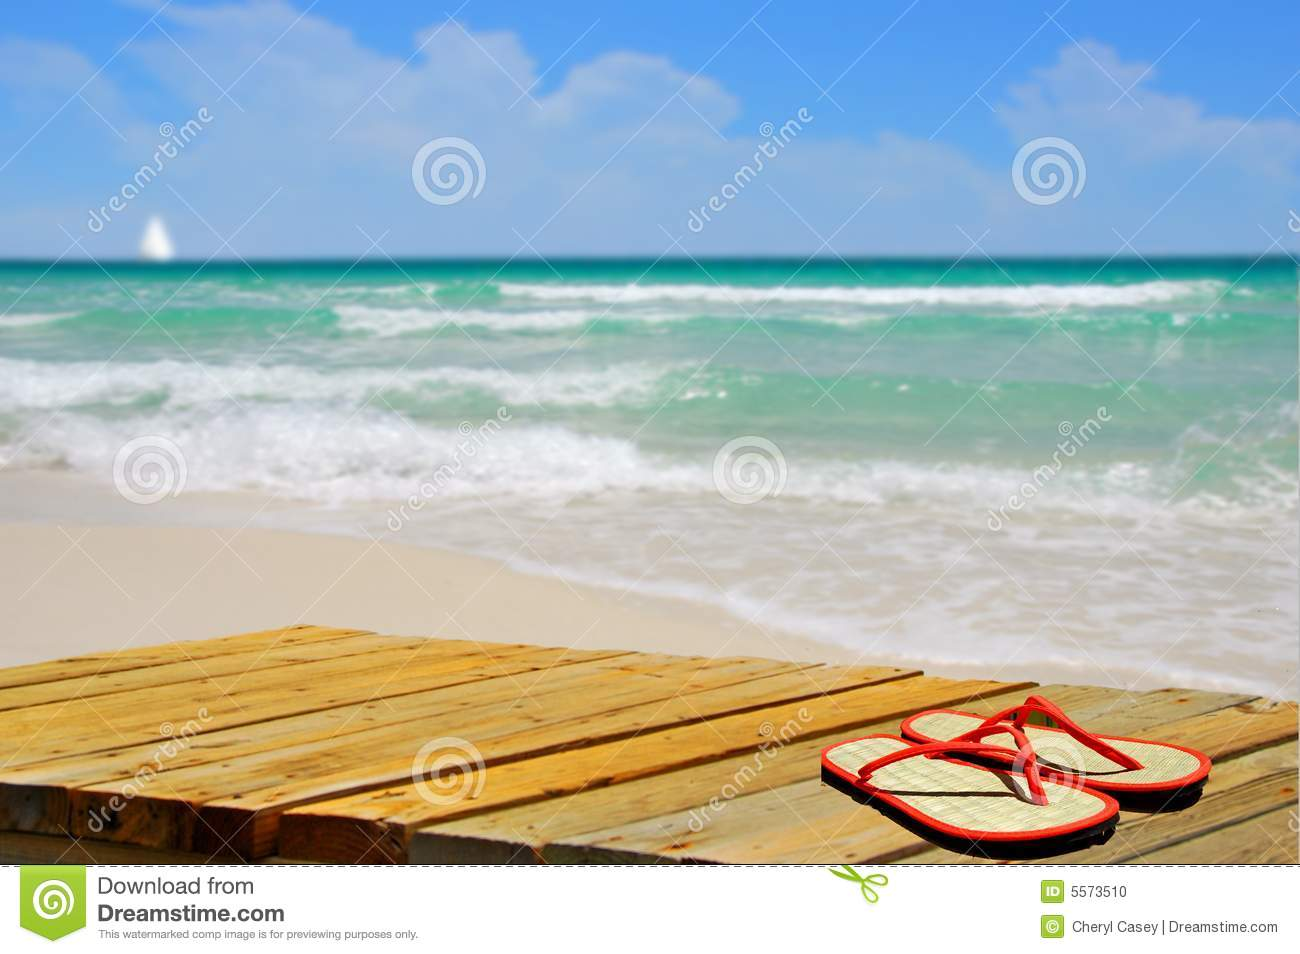 0b4804cc85d179 Sandals On Boardwalk At Beach Stock Photo - Image of deserted ...